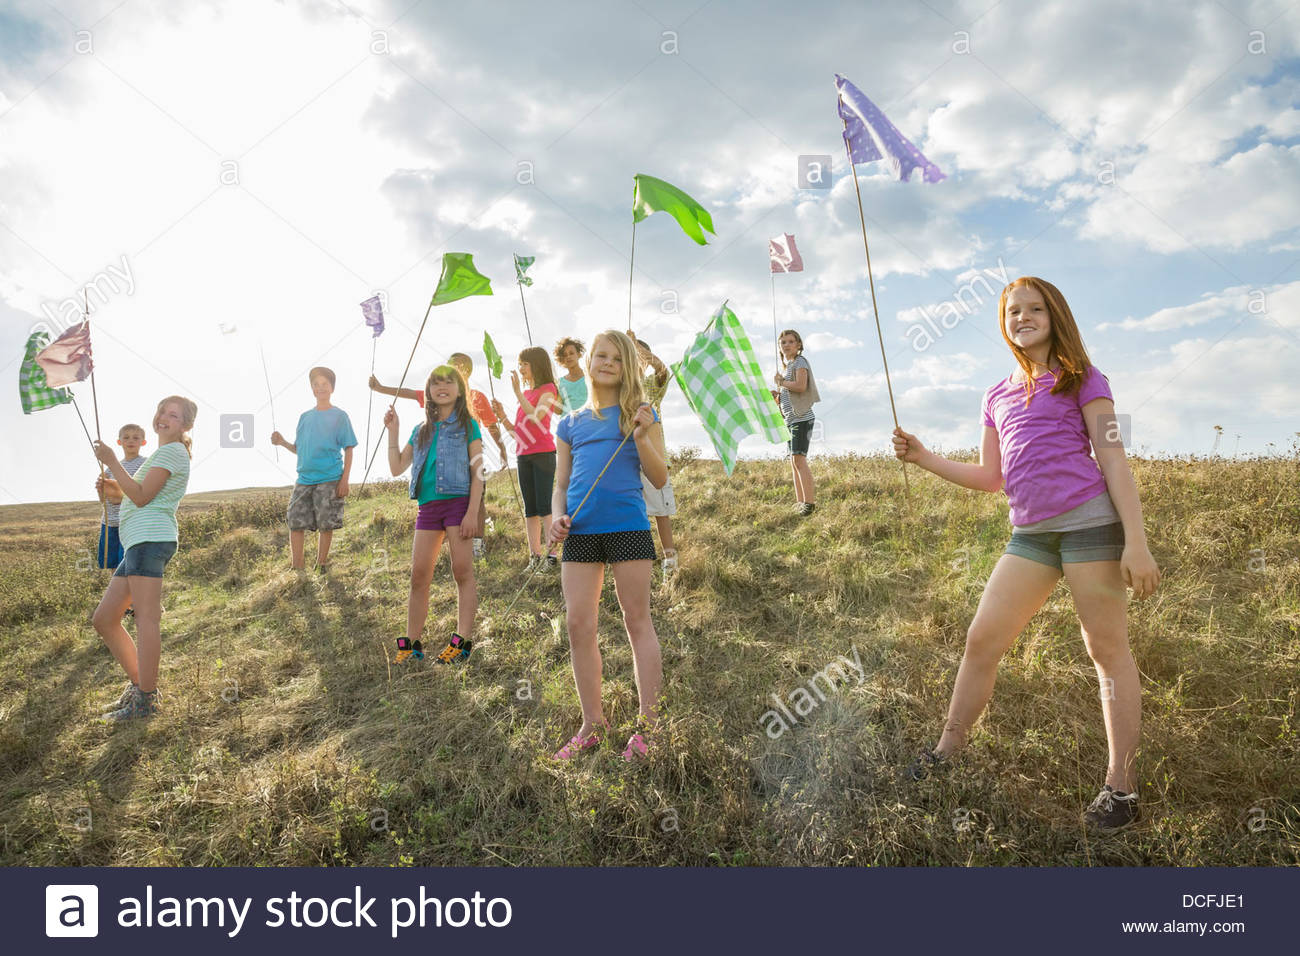 Group of kids holding flags up on a hill - Stock Image